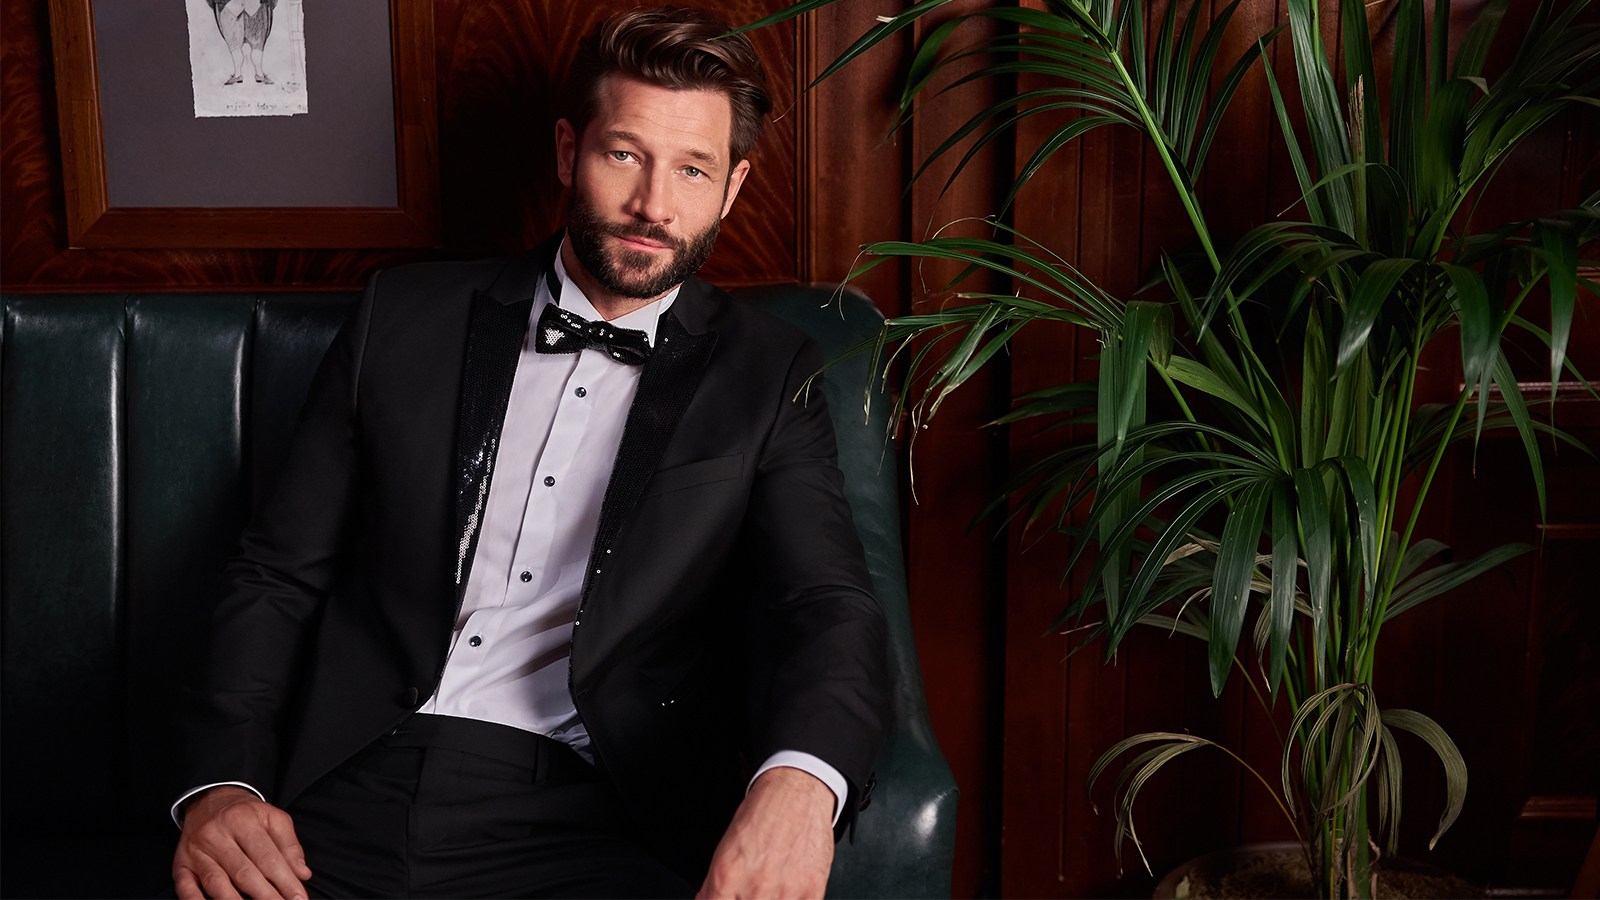 What to wear this Christmas - tuxedo